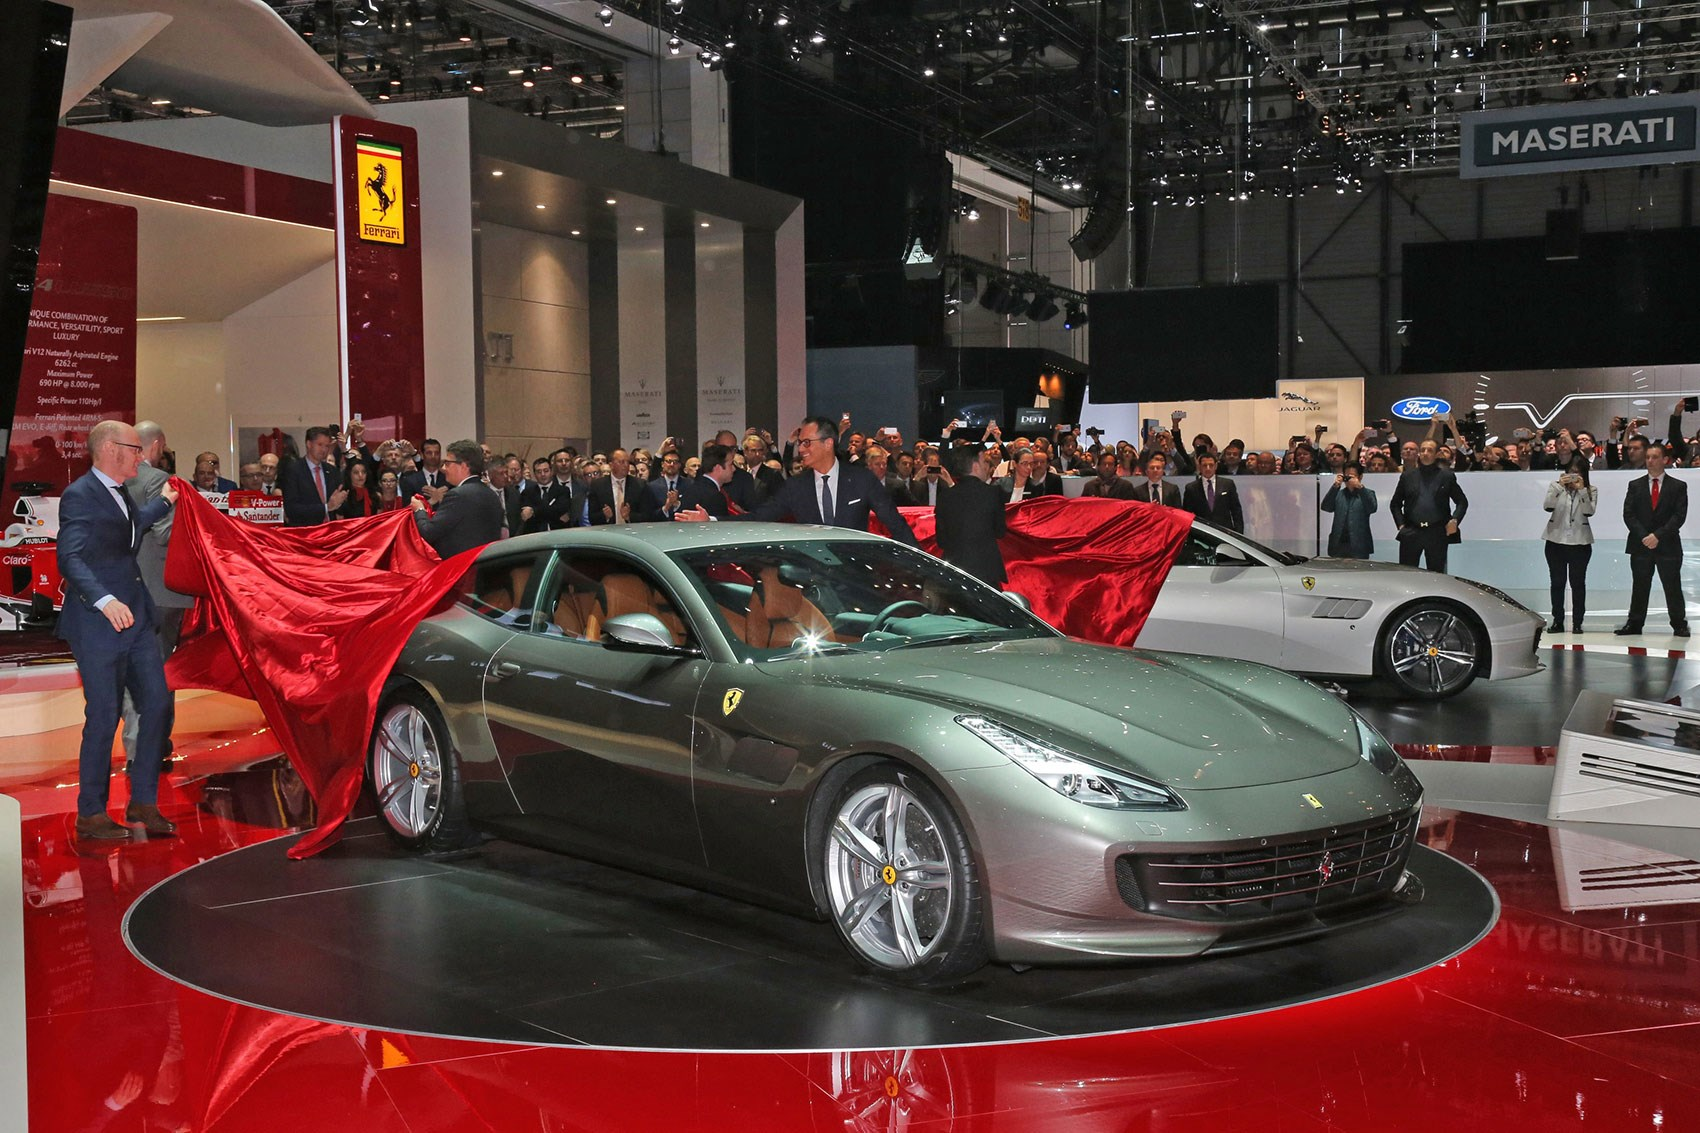 GTC4 Lusso At Geneva Show: The Only Kind Of 4wd Ferrari